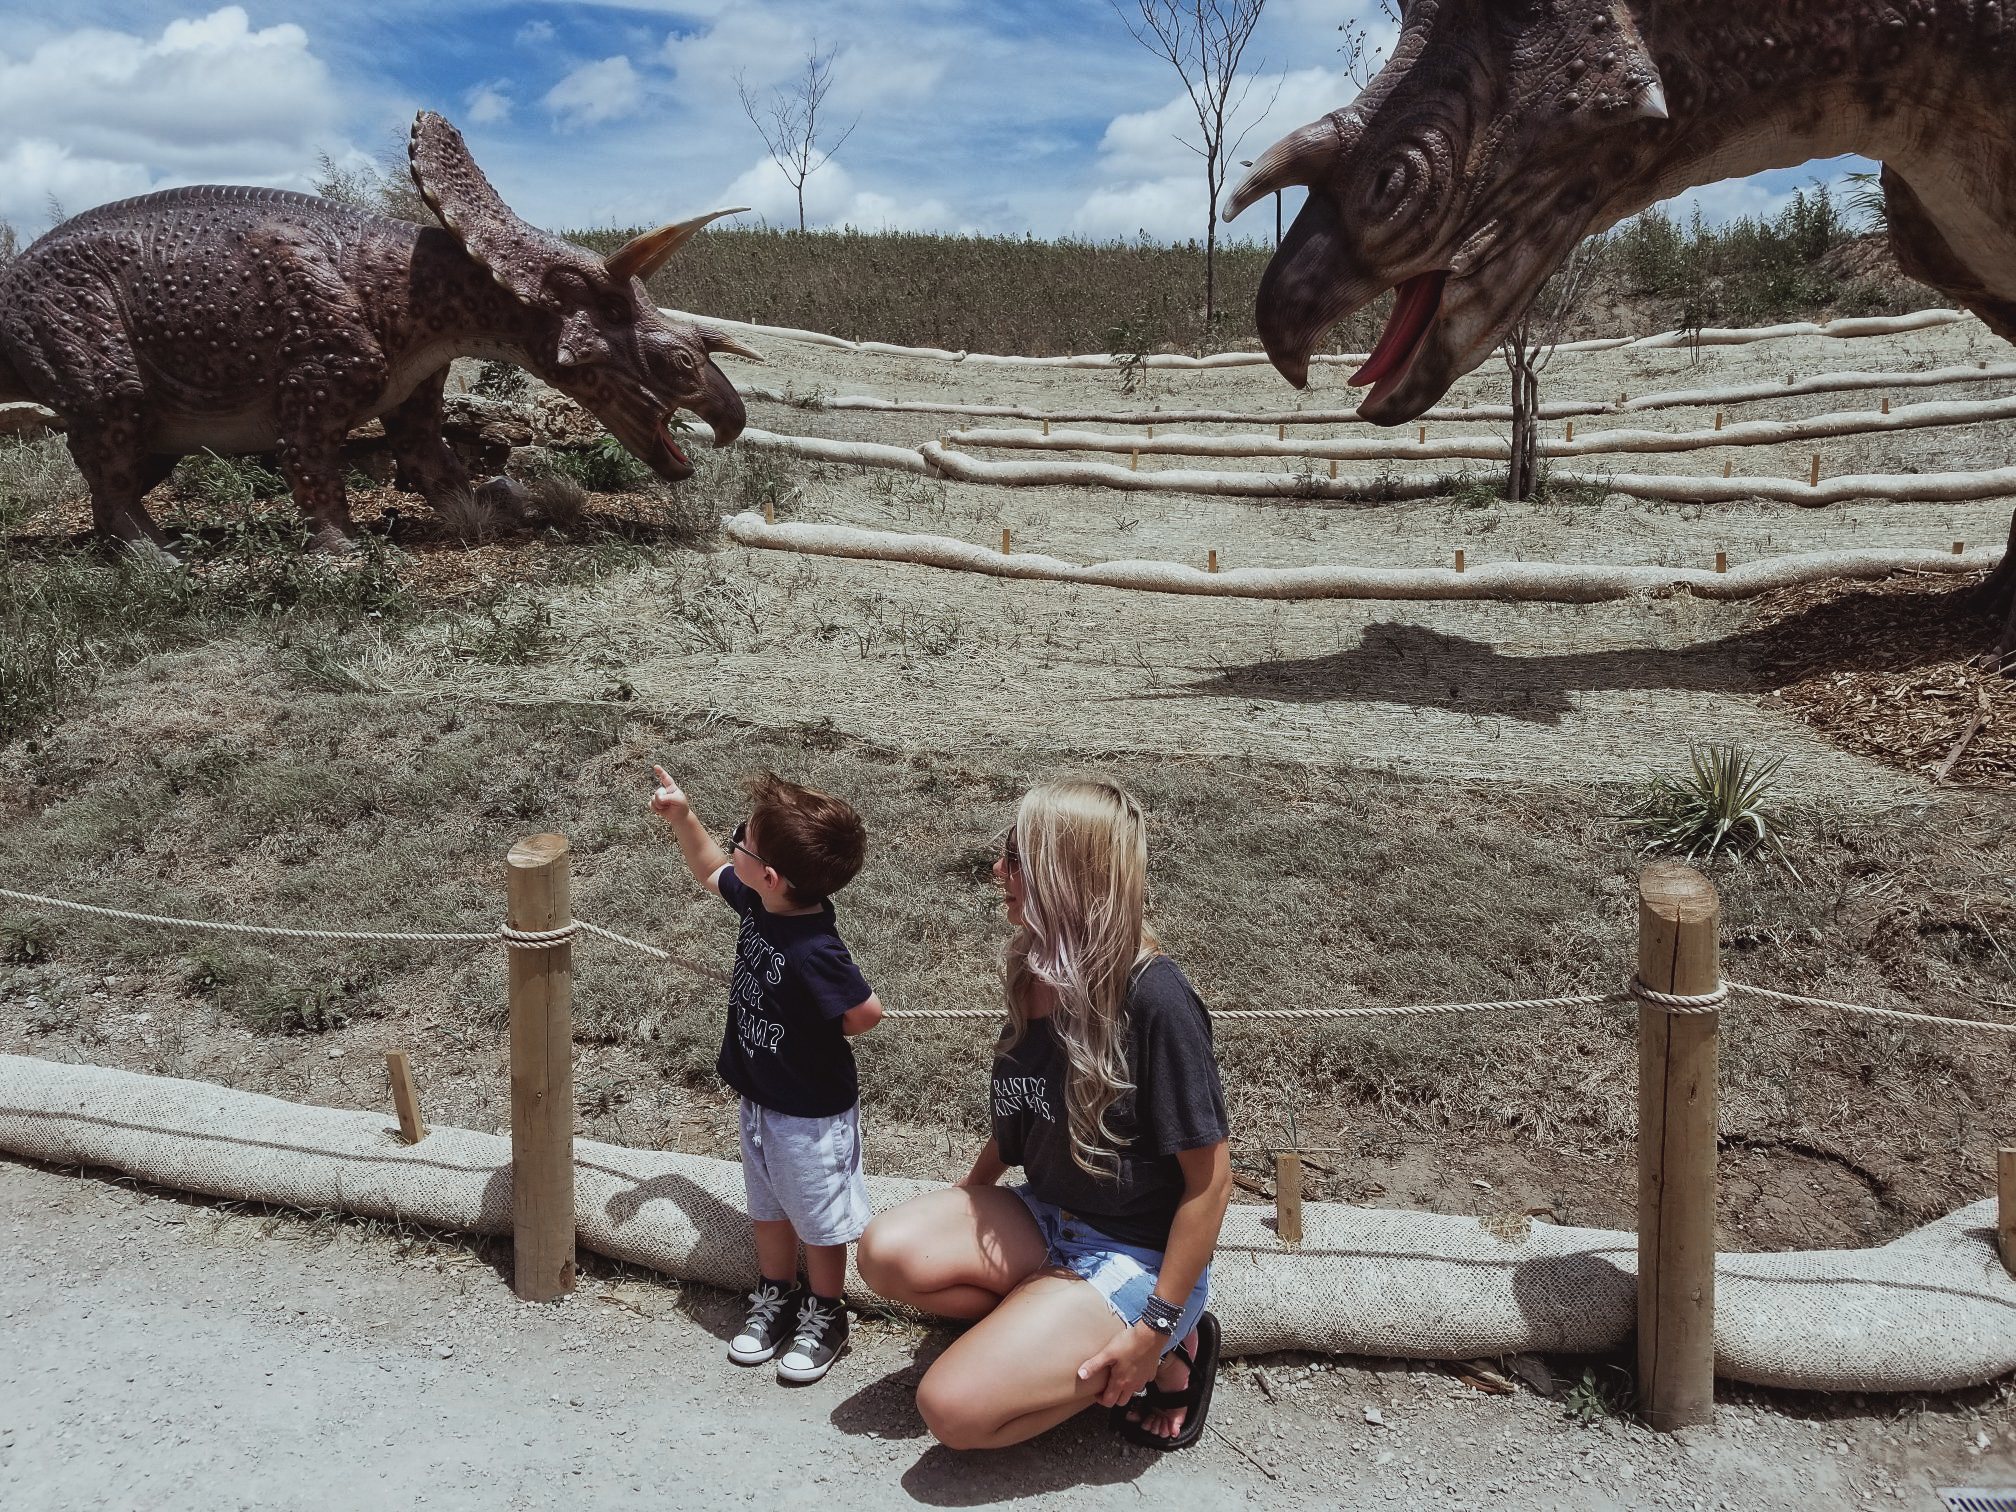 This place looks amazing! Field Station Dinosaurs is perfect if you're looking for family activities in Wichita, KS. This dinosaur park is one of the most popular kid-friendly activities in Derby, Kansas. Here's a real mom's review of Field Station Dinosaurs, so you can decide if it's worth the trip for your family.